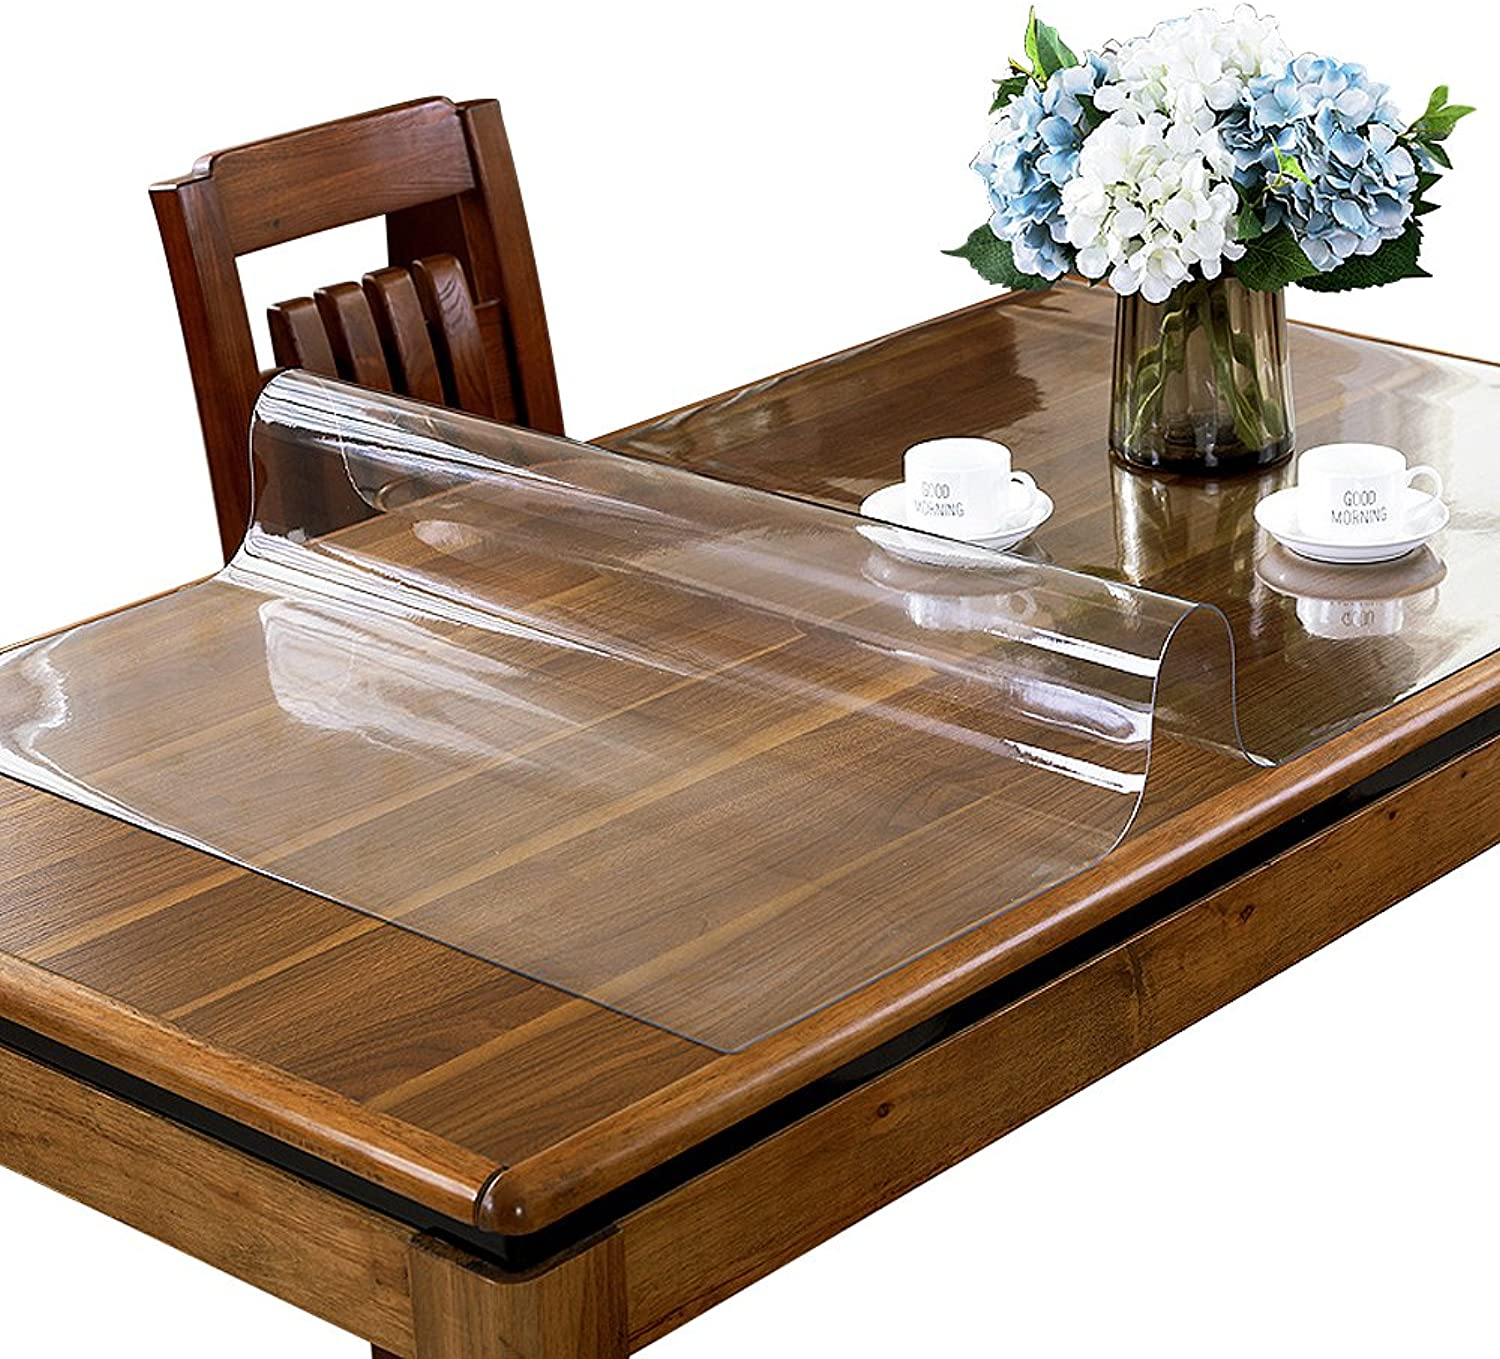 ETECHMART 1.5mm Thick 36 x 72 Inches Clear PVC Table Cover Predector for 6ft Table Non-Slip Water Resistant Rectangular Vinyl Desk Pad for Coffee Table, Writing Desk, End Table